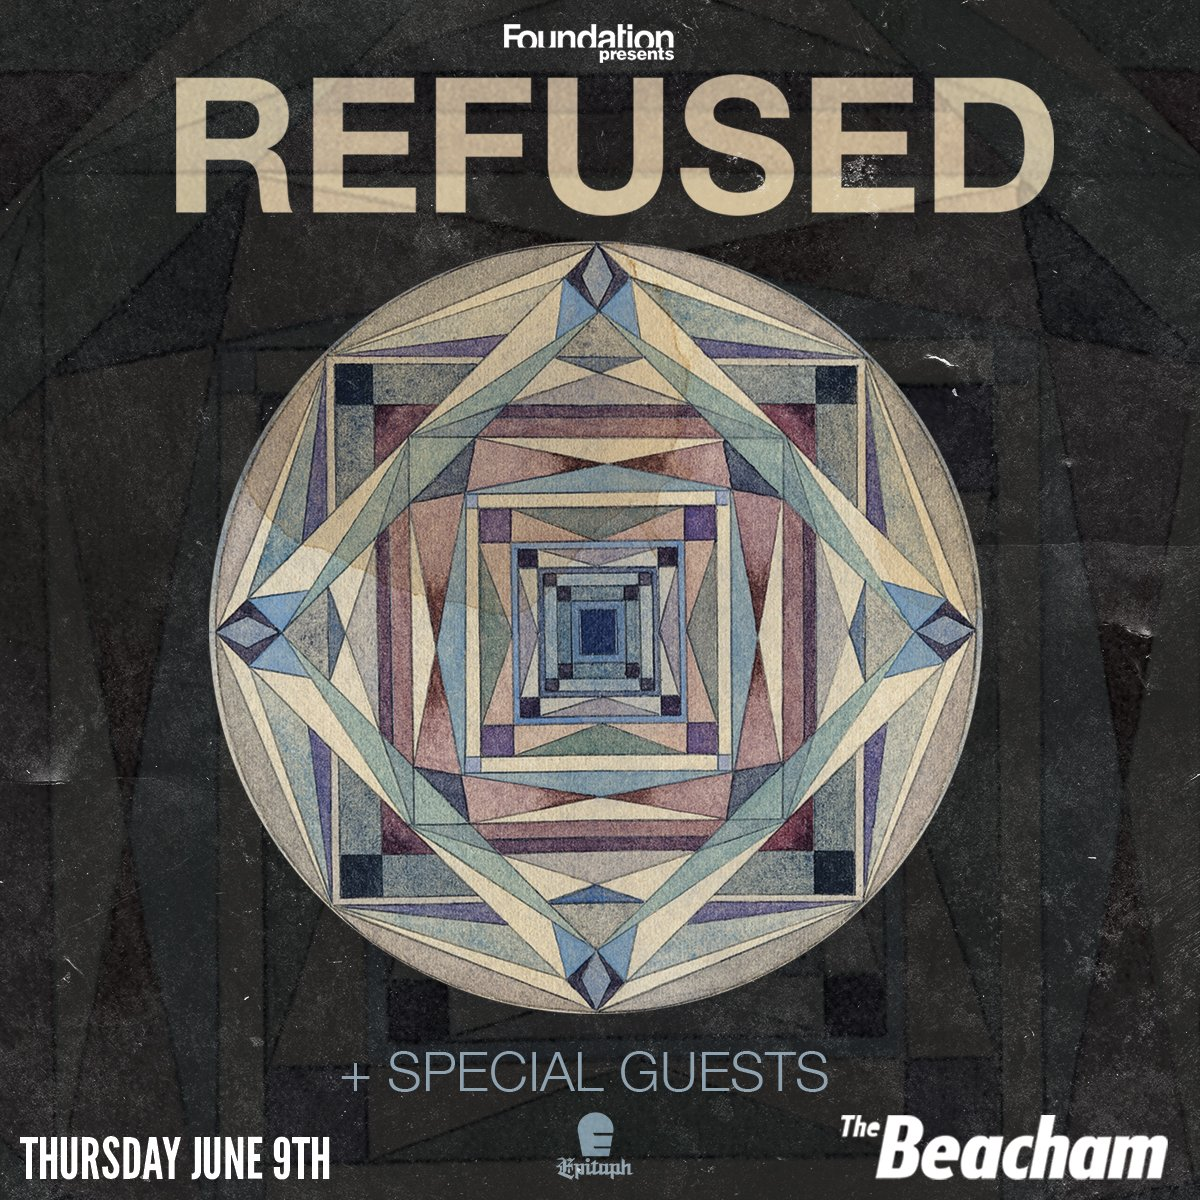 LAST MINUTE GIVEAWAY: RETWEET & WIN a pair of tickets to @Refused TONIGHT at The Beacham! https://t.co/bCytjU5MCl https://t.co/H9WaBrM0NL